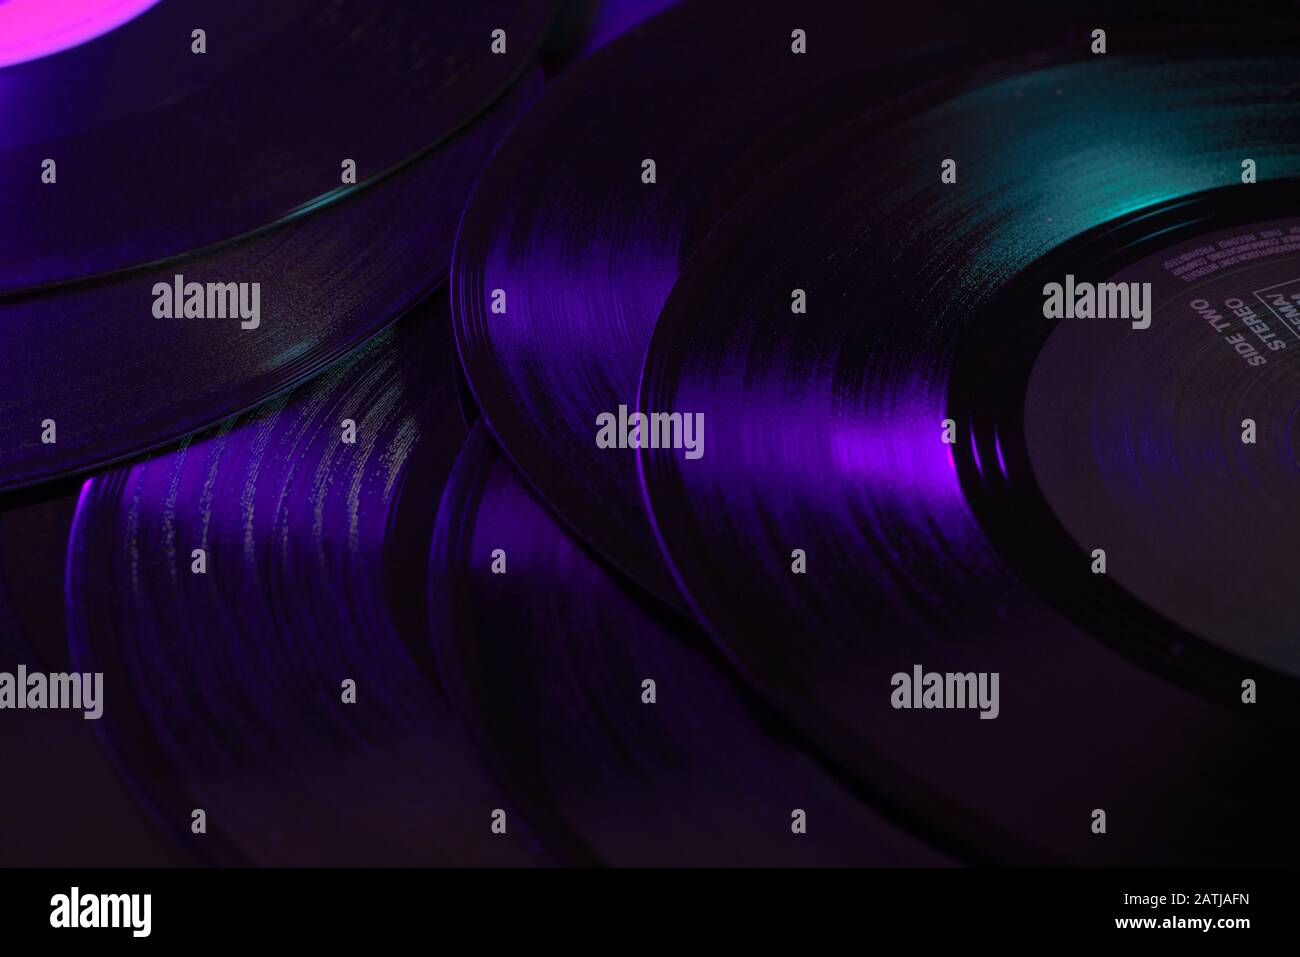 Wallpaper 80s High Resolution Stock Photography And Images Alamy